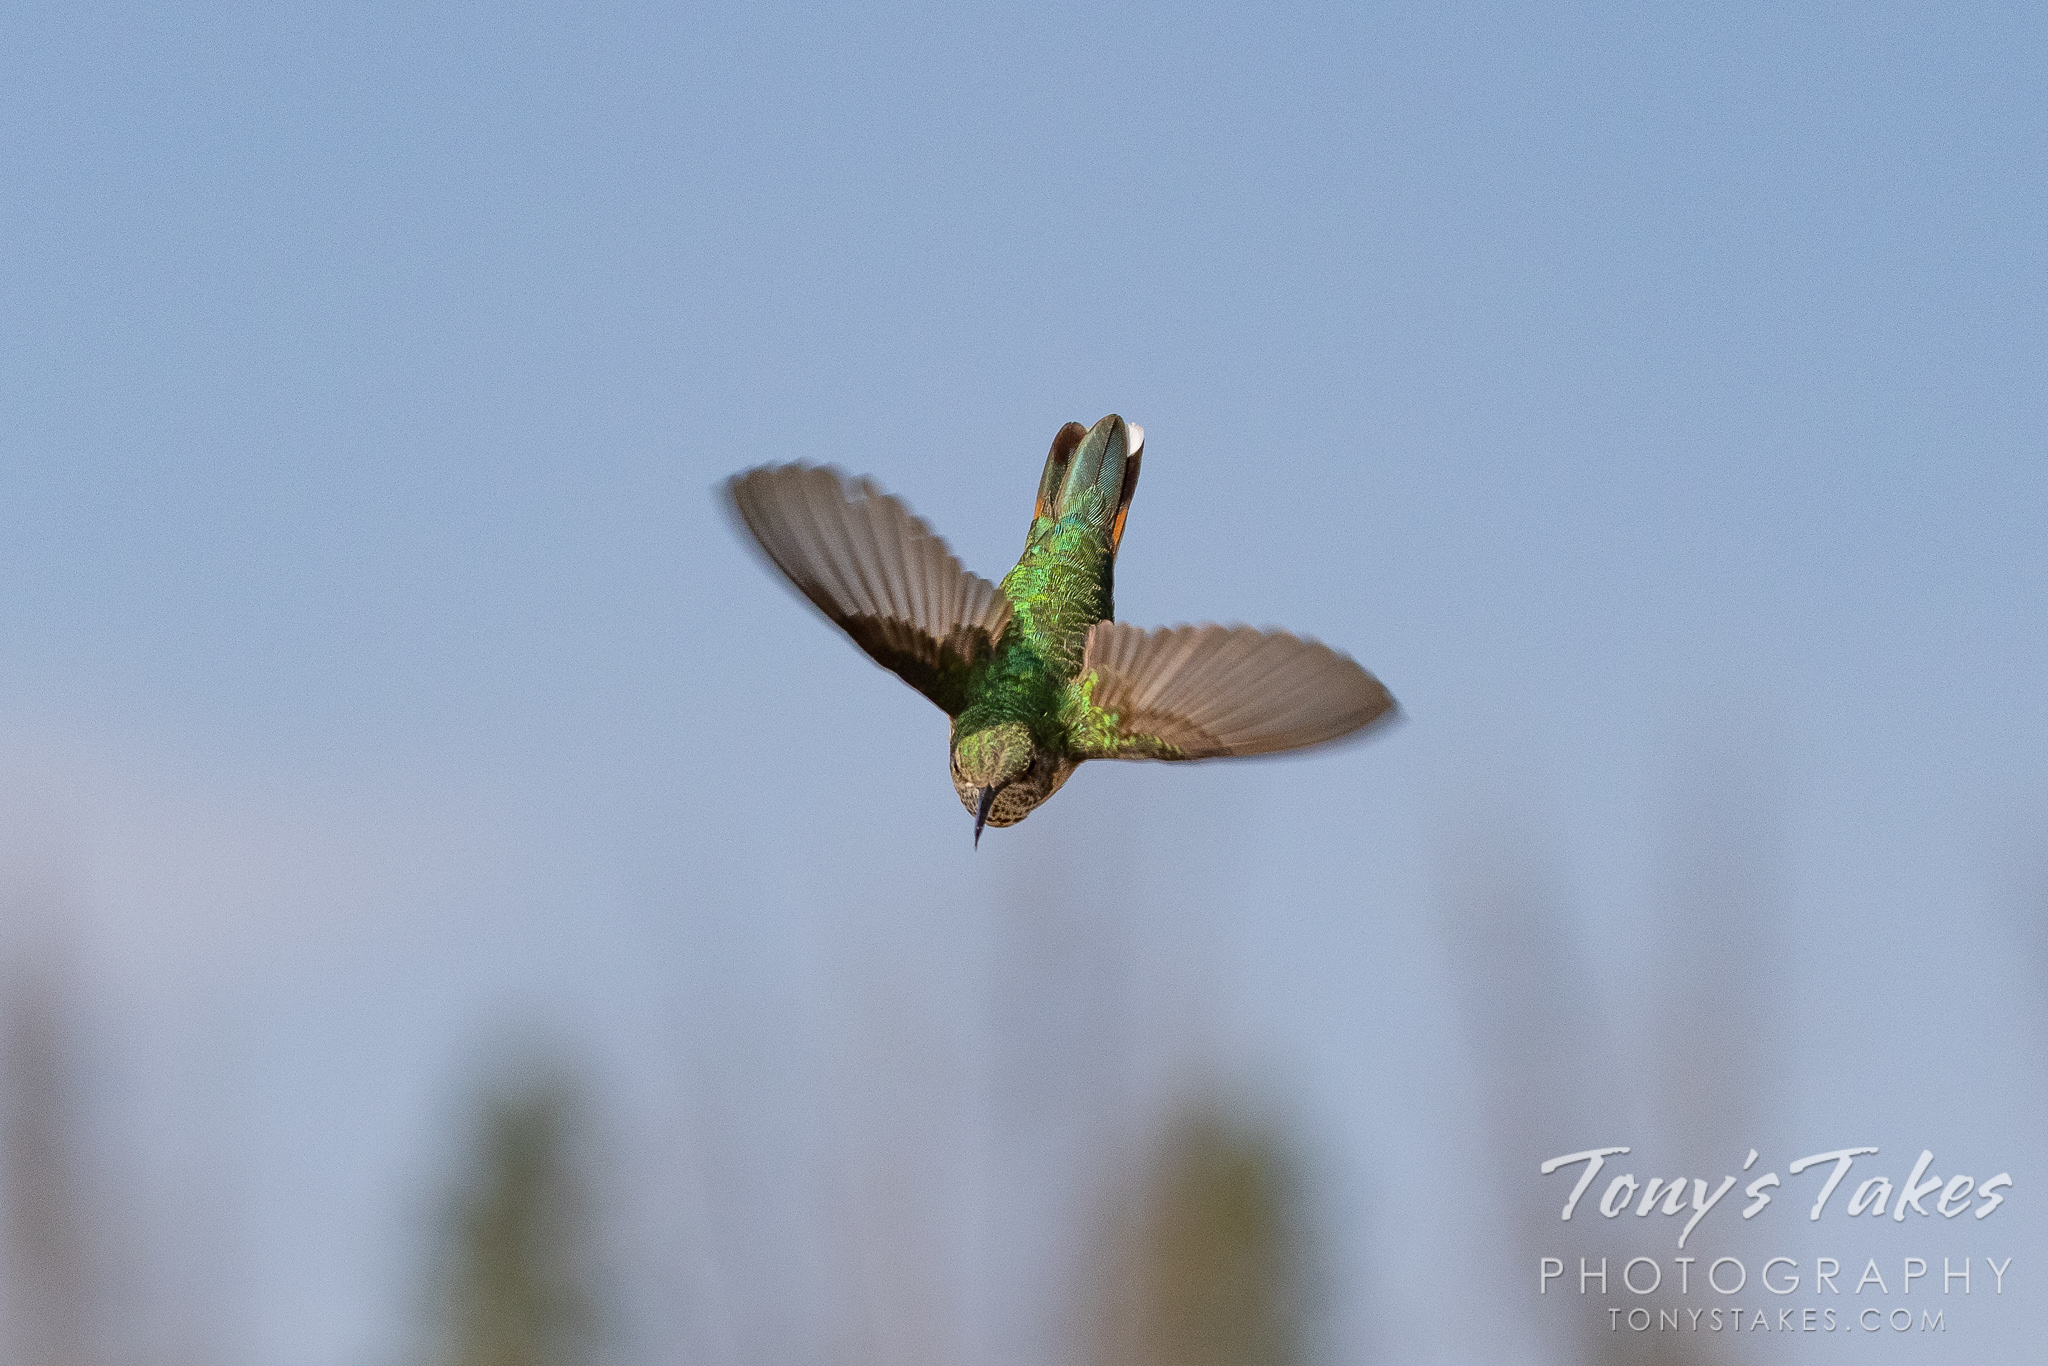 Hummingbird takes a dive. Canon R5, Canon EF 100-400mm f/4.5-5.6L IS II USM @ 200mm, 1/3200, f/8, ISO 640.